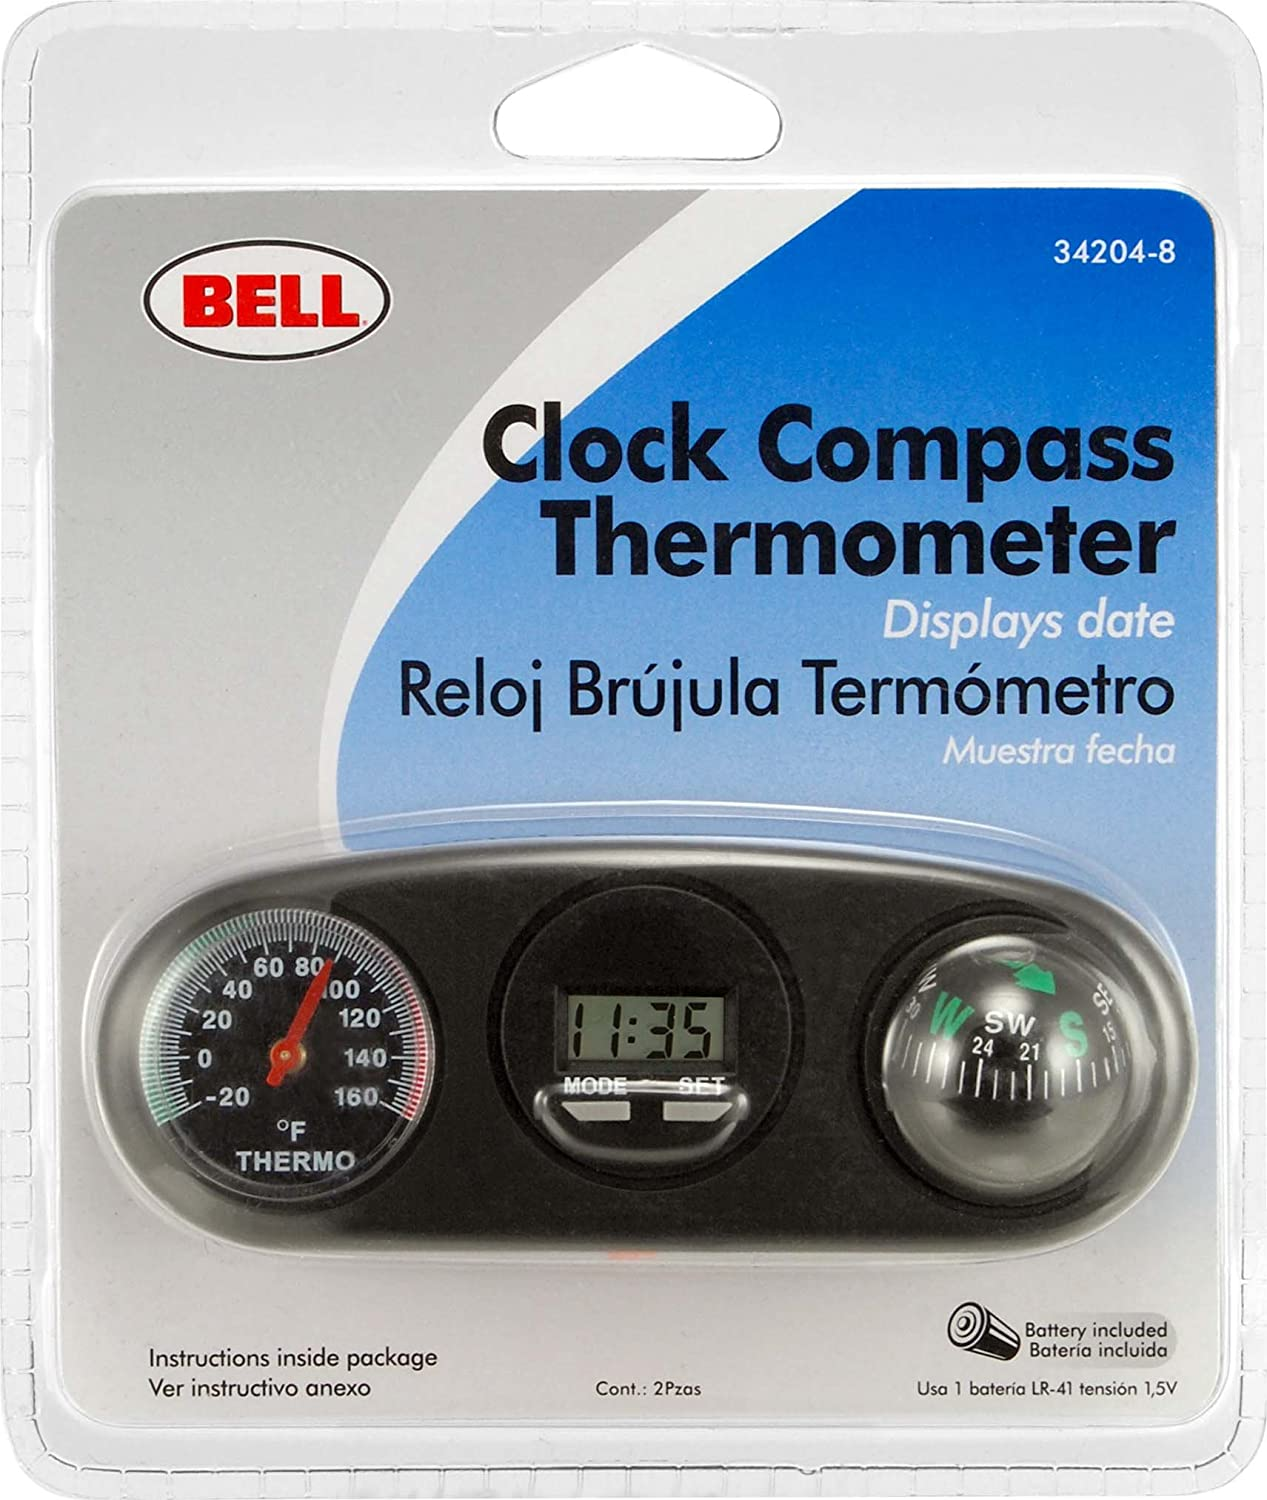 Amazon.com: Bell Automotive 22-1-34204-8 R-A-M Clock, Compass and Thermometer: Automotive